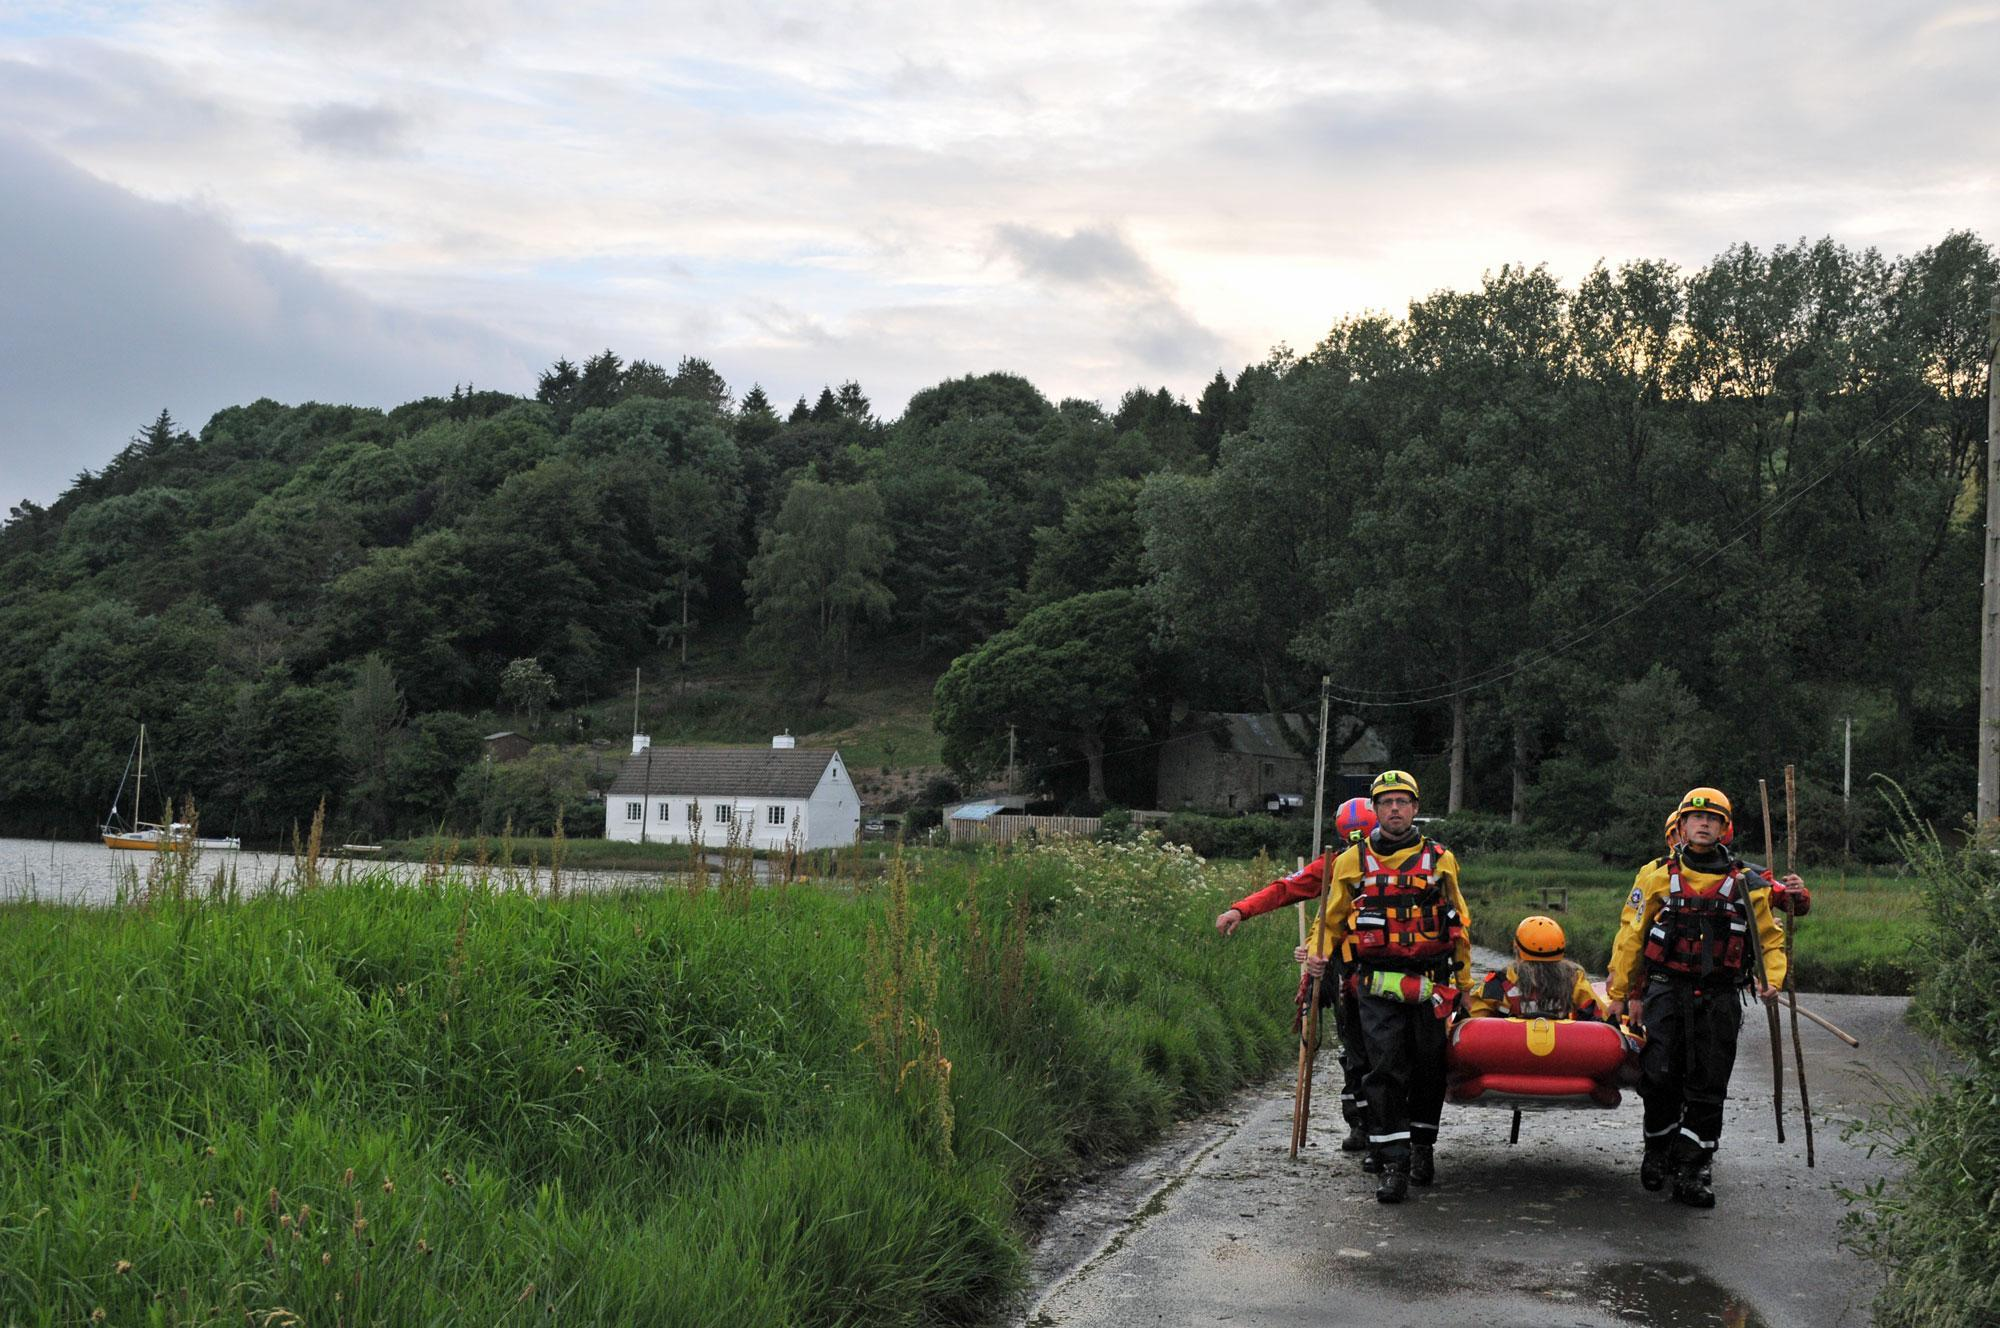 Dartmoor Search and Rescue Ashburton volunteers training on the River Aune at Aveton Gifford